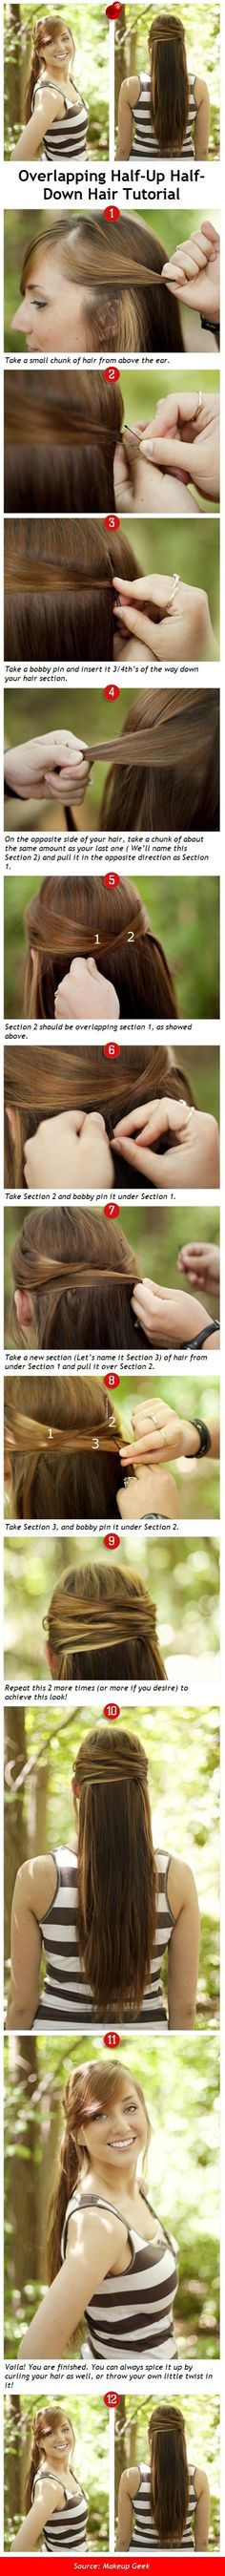 Overlapping Half-Up Half-Down Hair Excellent Tutorial DYI Updo elegant. Can easily be combined with a braid or a bun!